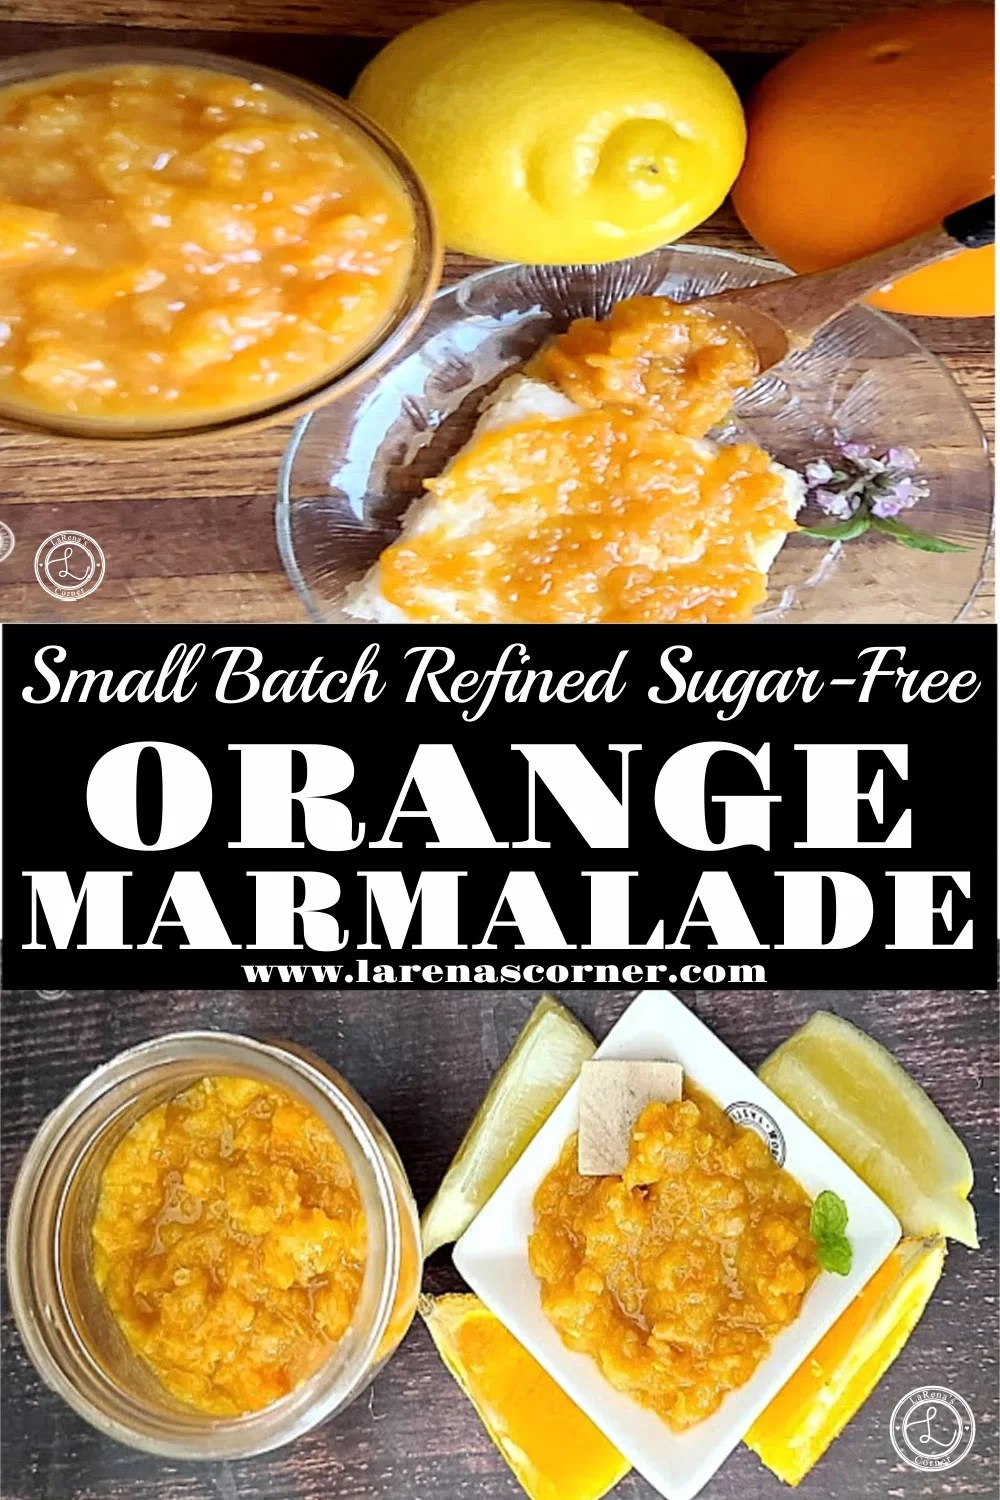 Two Pictures of orange marmalade. One with a jar and a small bowl of marmalade surrounded by orange and lemon slices. One picture of a piece of toast with marmalade and an orange, lemon and jar of marmalade.